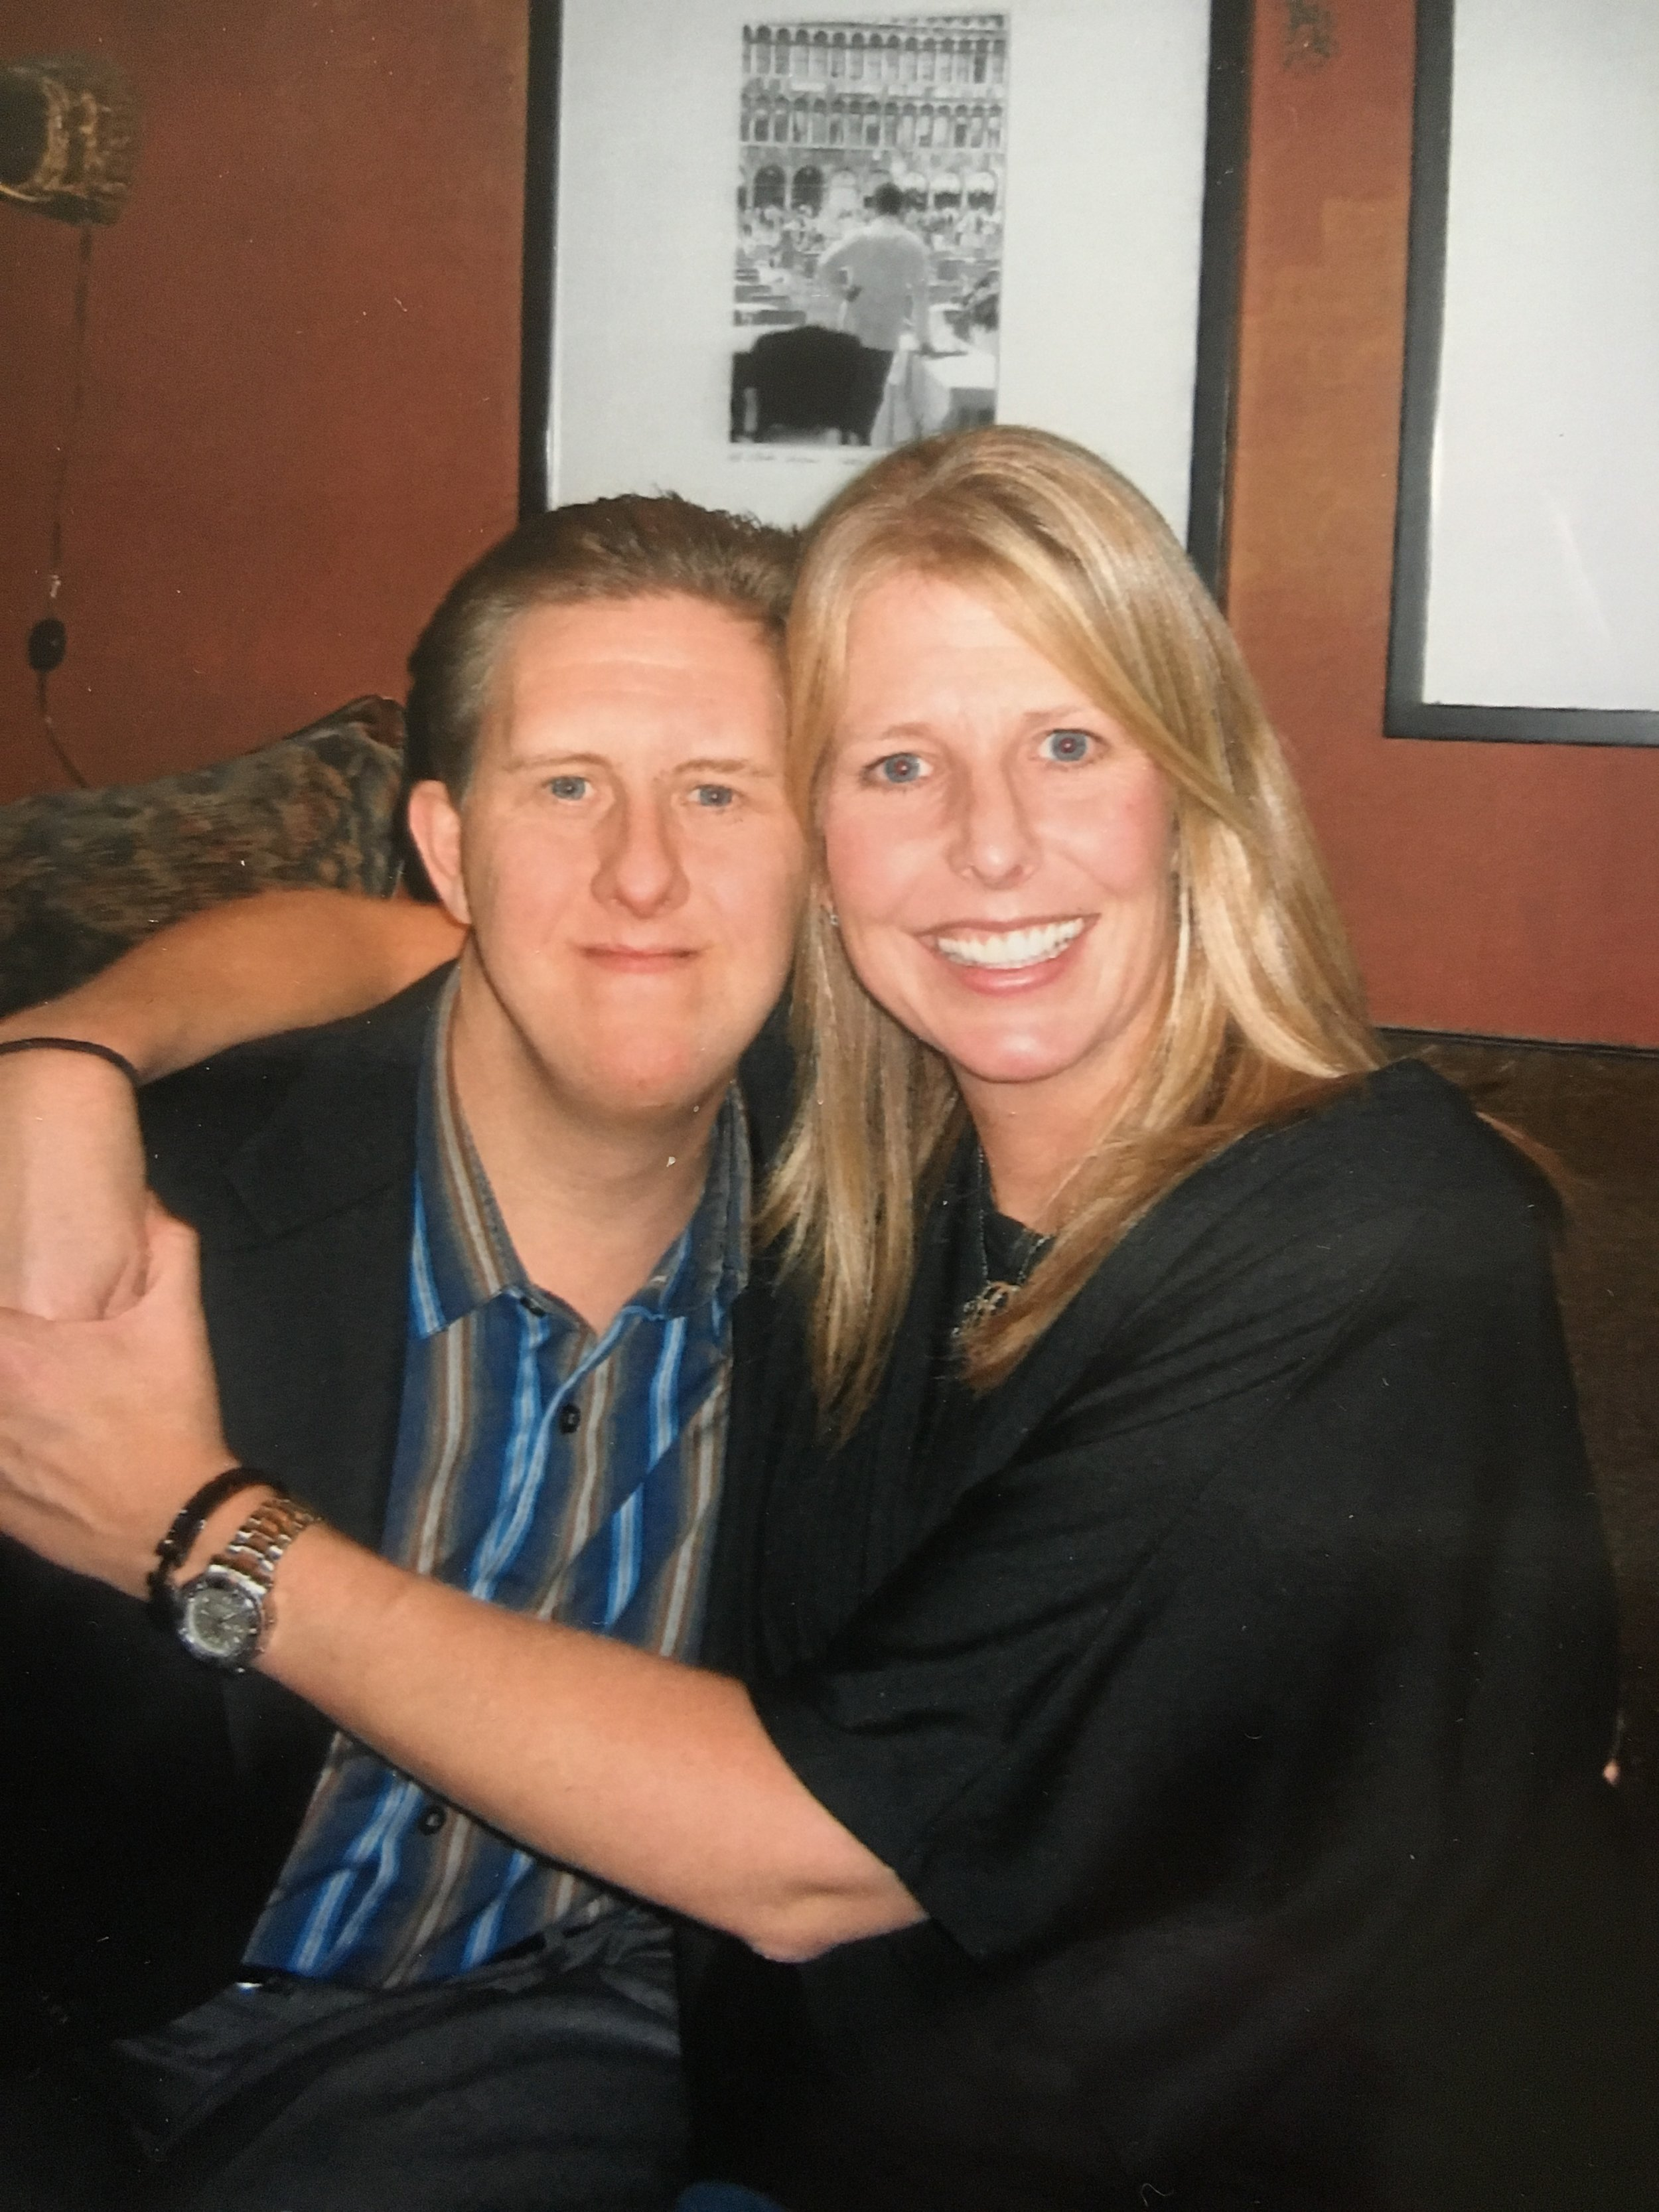 Scott (Scotty) Clegg with sister Tracy in 2005, 27 years after his battle with leukemia.